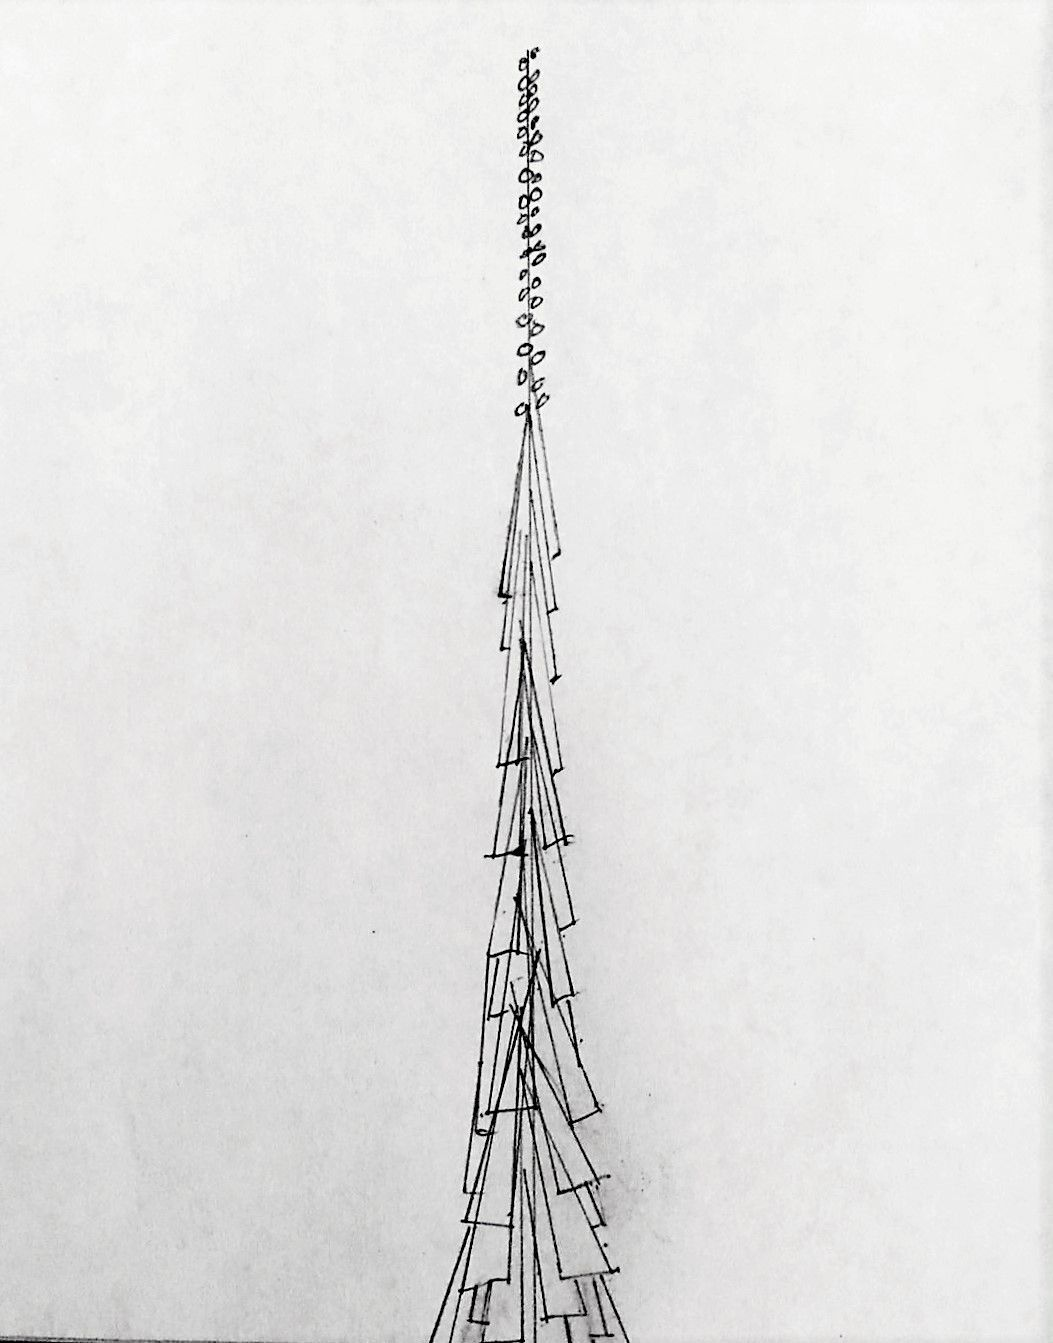 A sketch by writer and critic Scott Cantrell of his idea for a new spire for Notre Dame